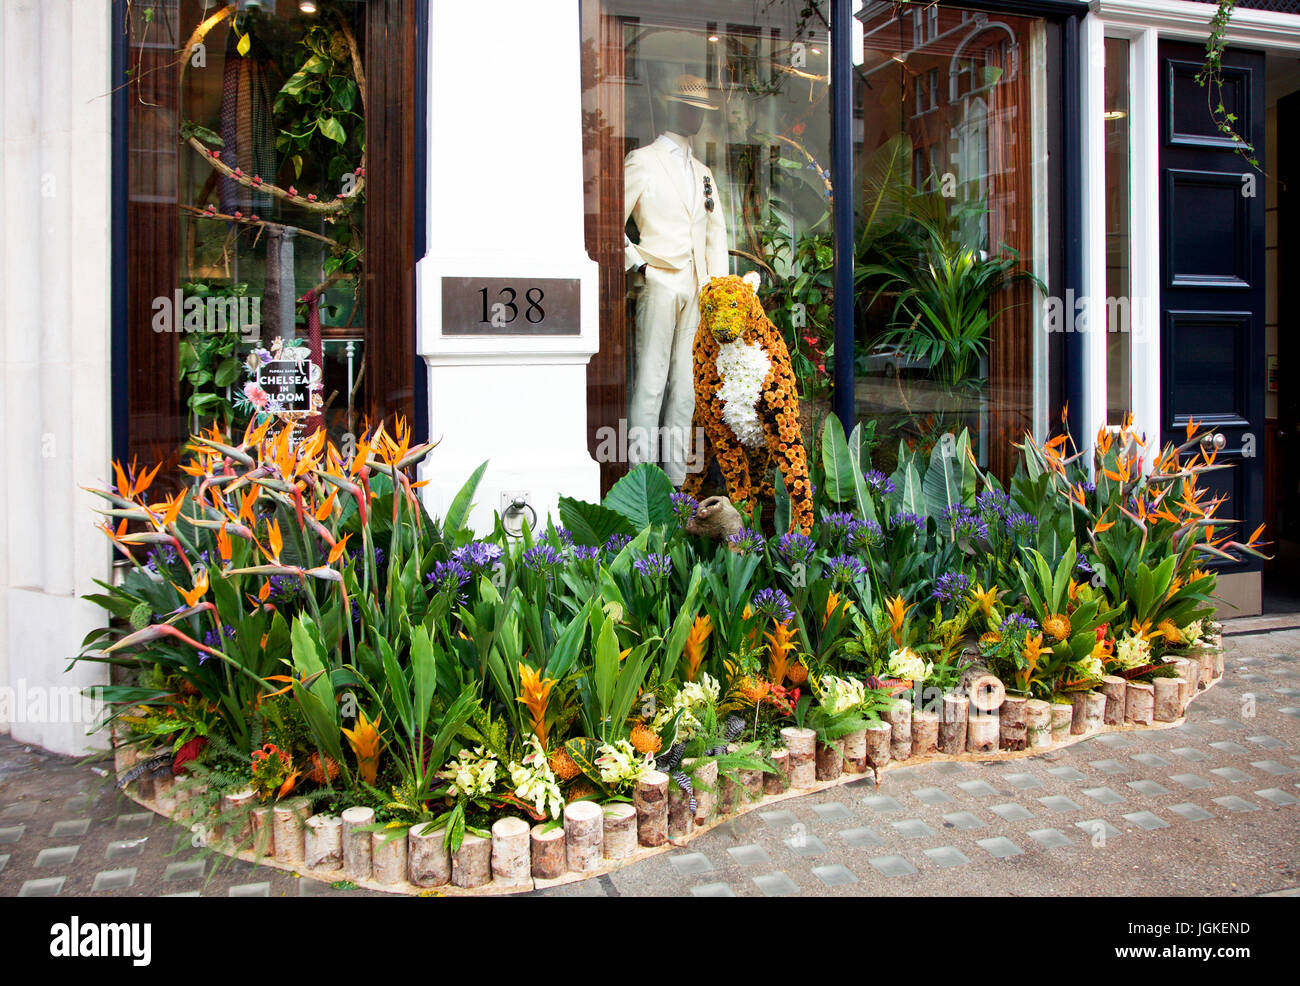 Hackett's Chelsea in Bloom Floral pavement display at 138 Sloane Street, London SW3 - Stock Image